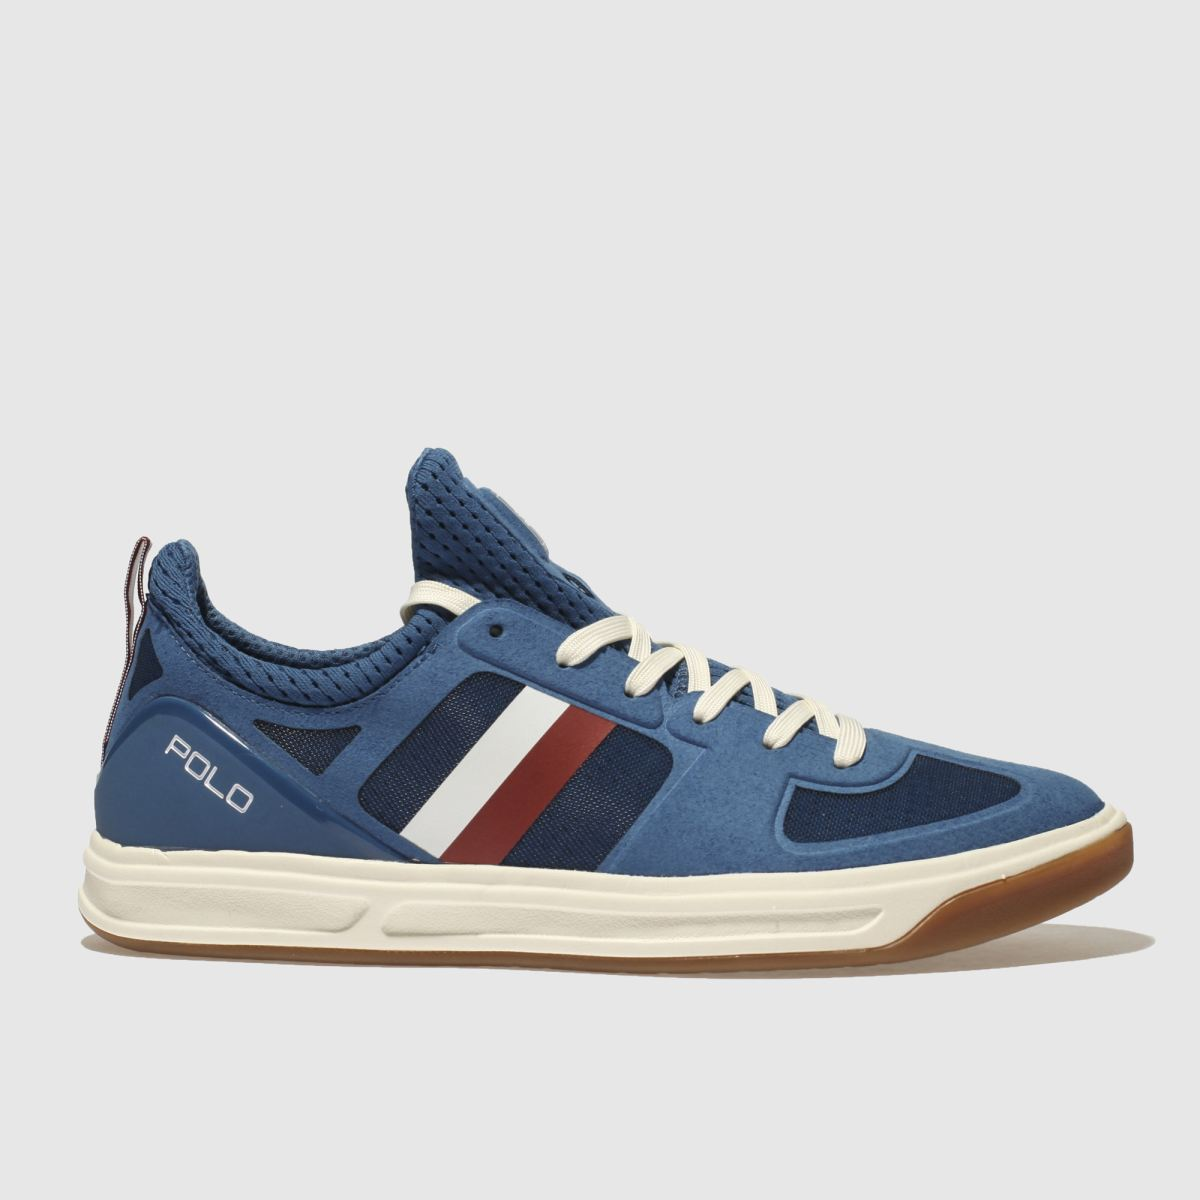 Polo Ralph Lauren Blue Court 200 Trainers